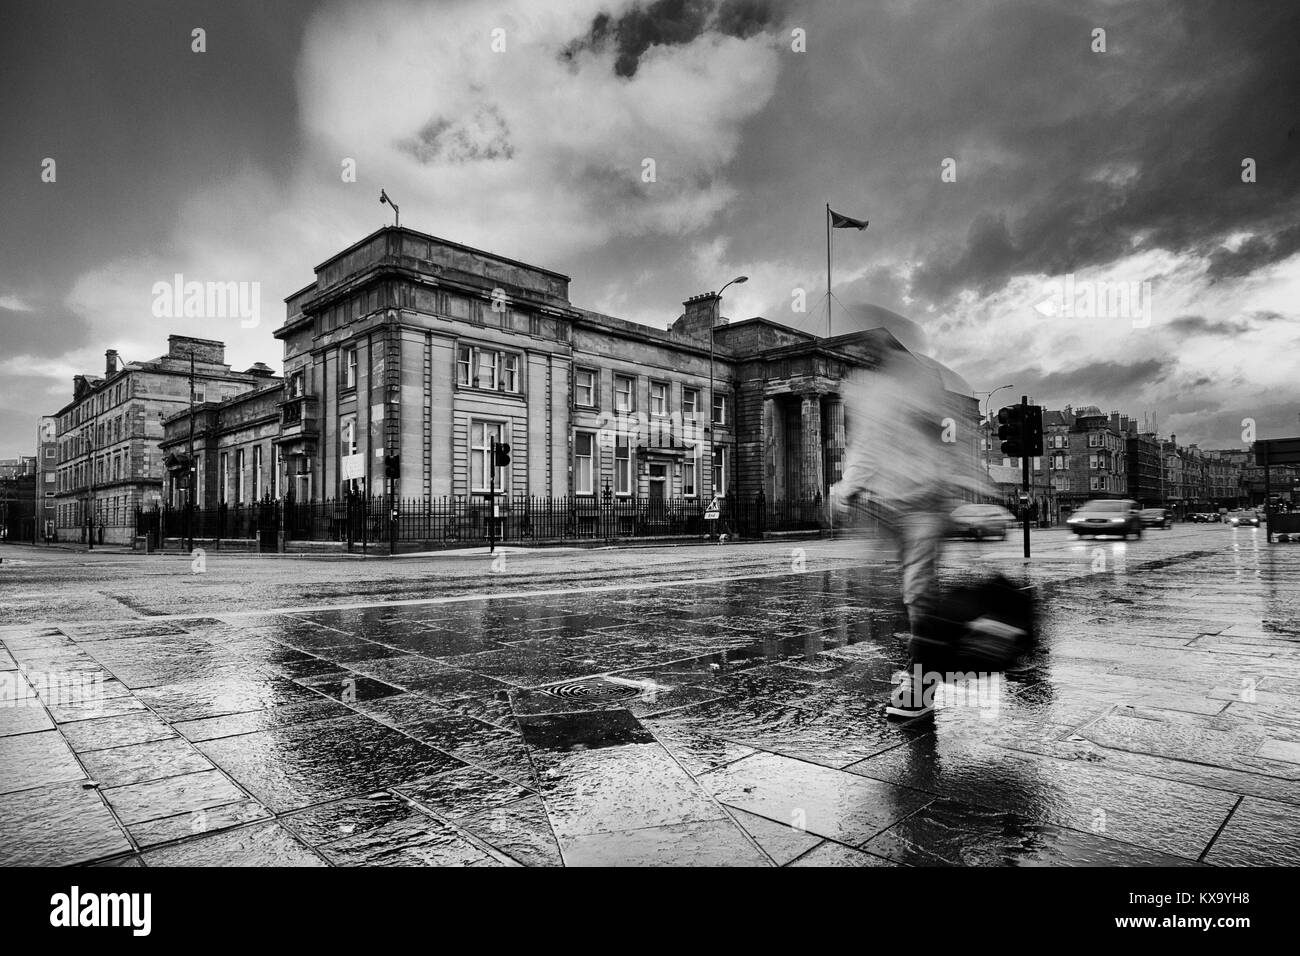 24th September 2015  Glasgow, Scotland - Stock Image